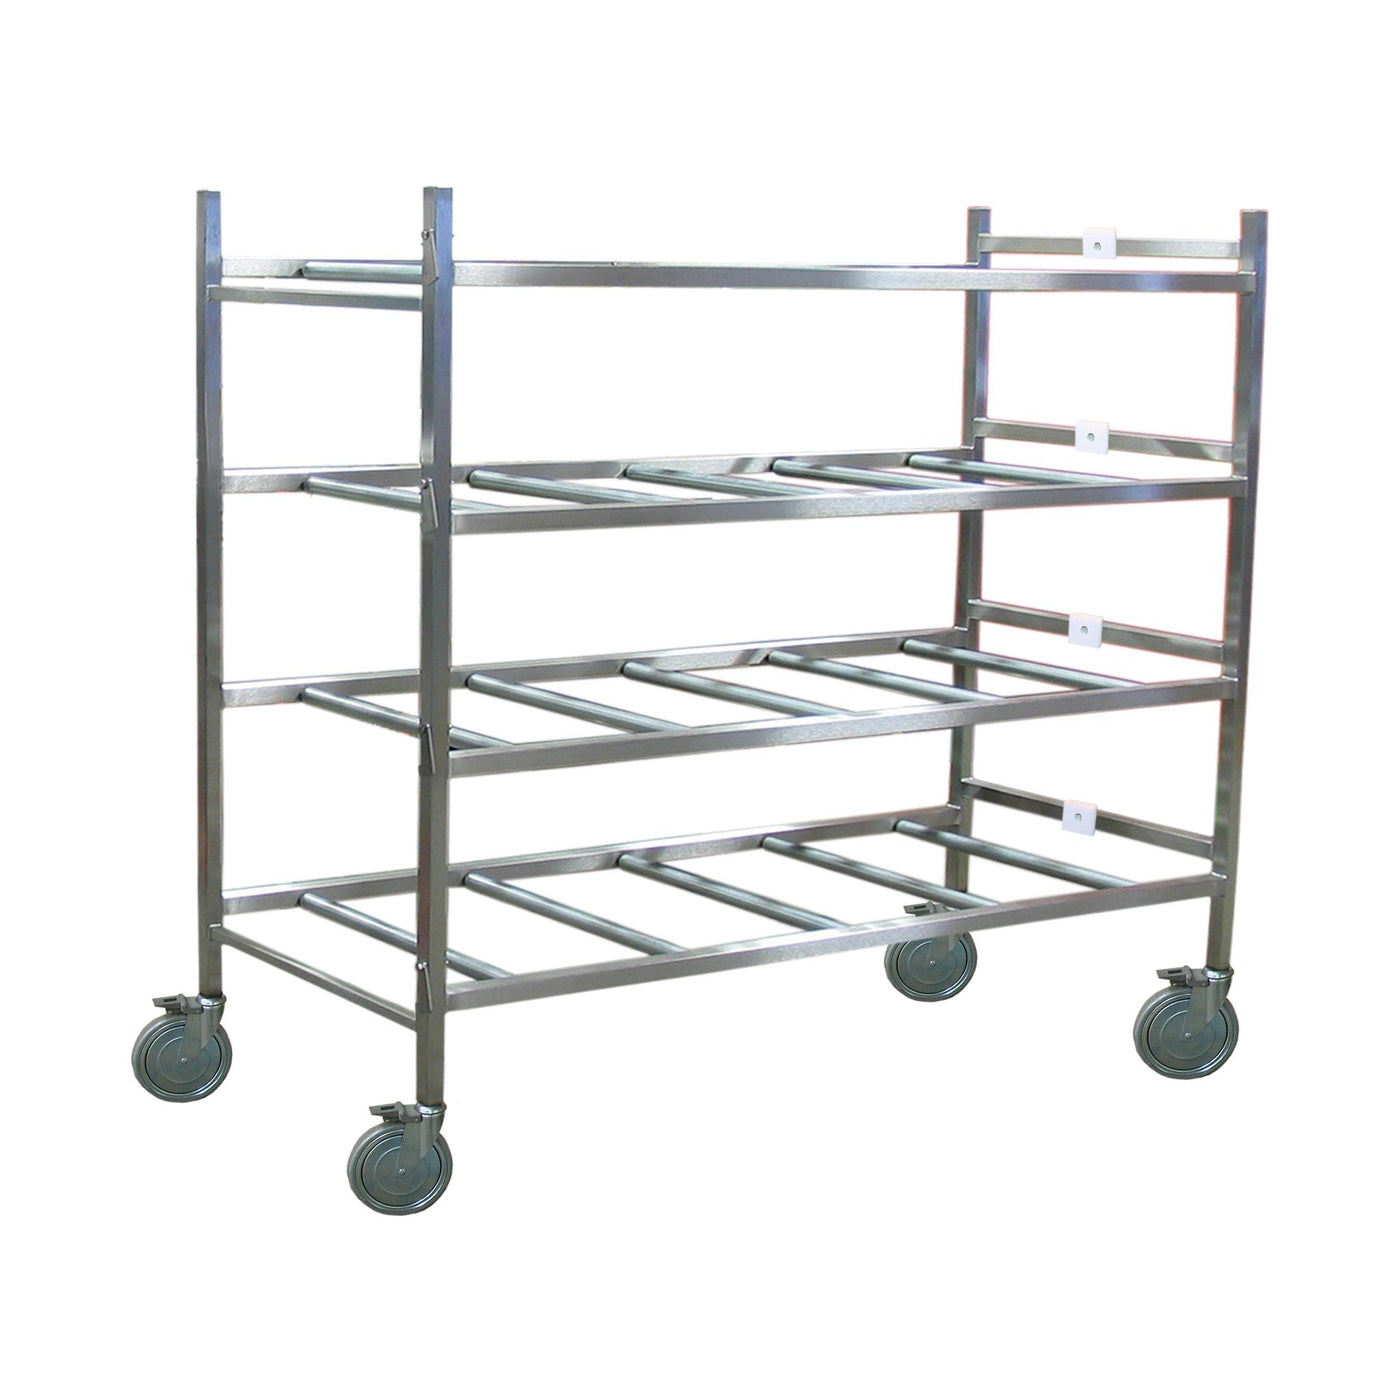 Portable Cremation Storage Rack with Full Rollers-Cadaver Handling & Storage Systems-Mortech Manufacturing Company Inc. Quality Stainless Steel Autopsy, Morgue, Funeral Home, Necropsy, Veterinary / Anatomy, Dissection Equipment and Accessories